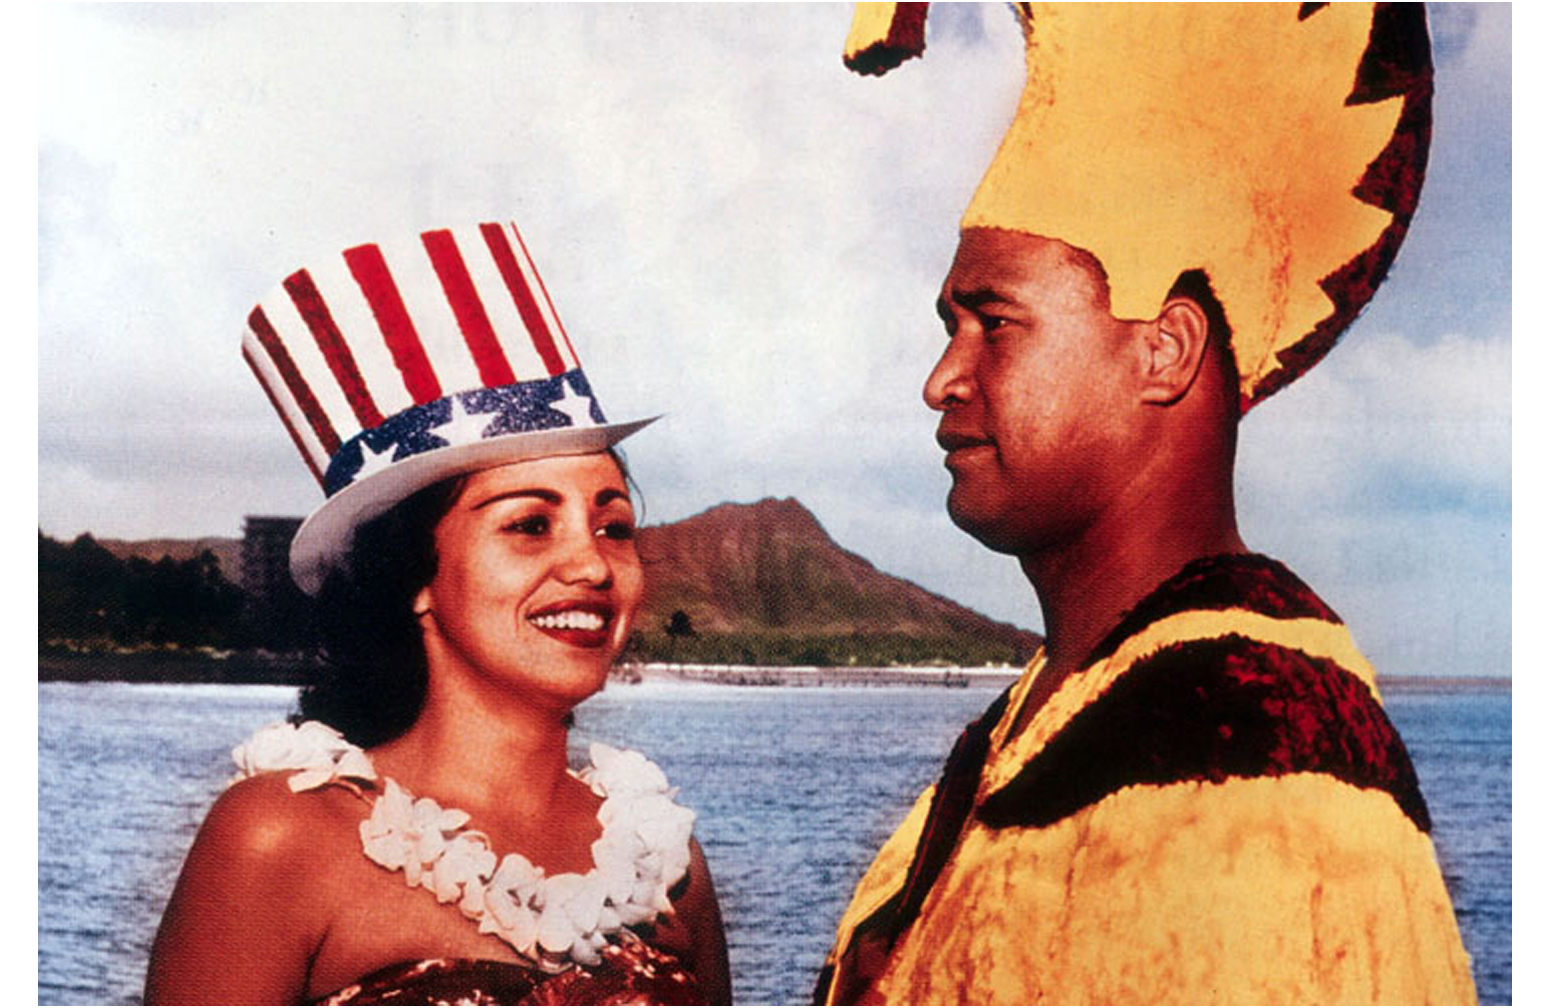 postcard picture of hawaiian lady in  a red, white & blue hat standing next to man in ahawaiian cloak & hat with Diamond Head in the background.